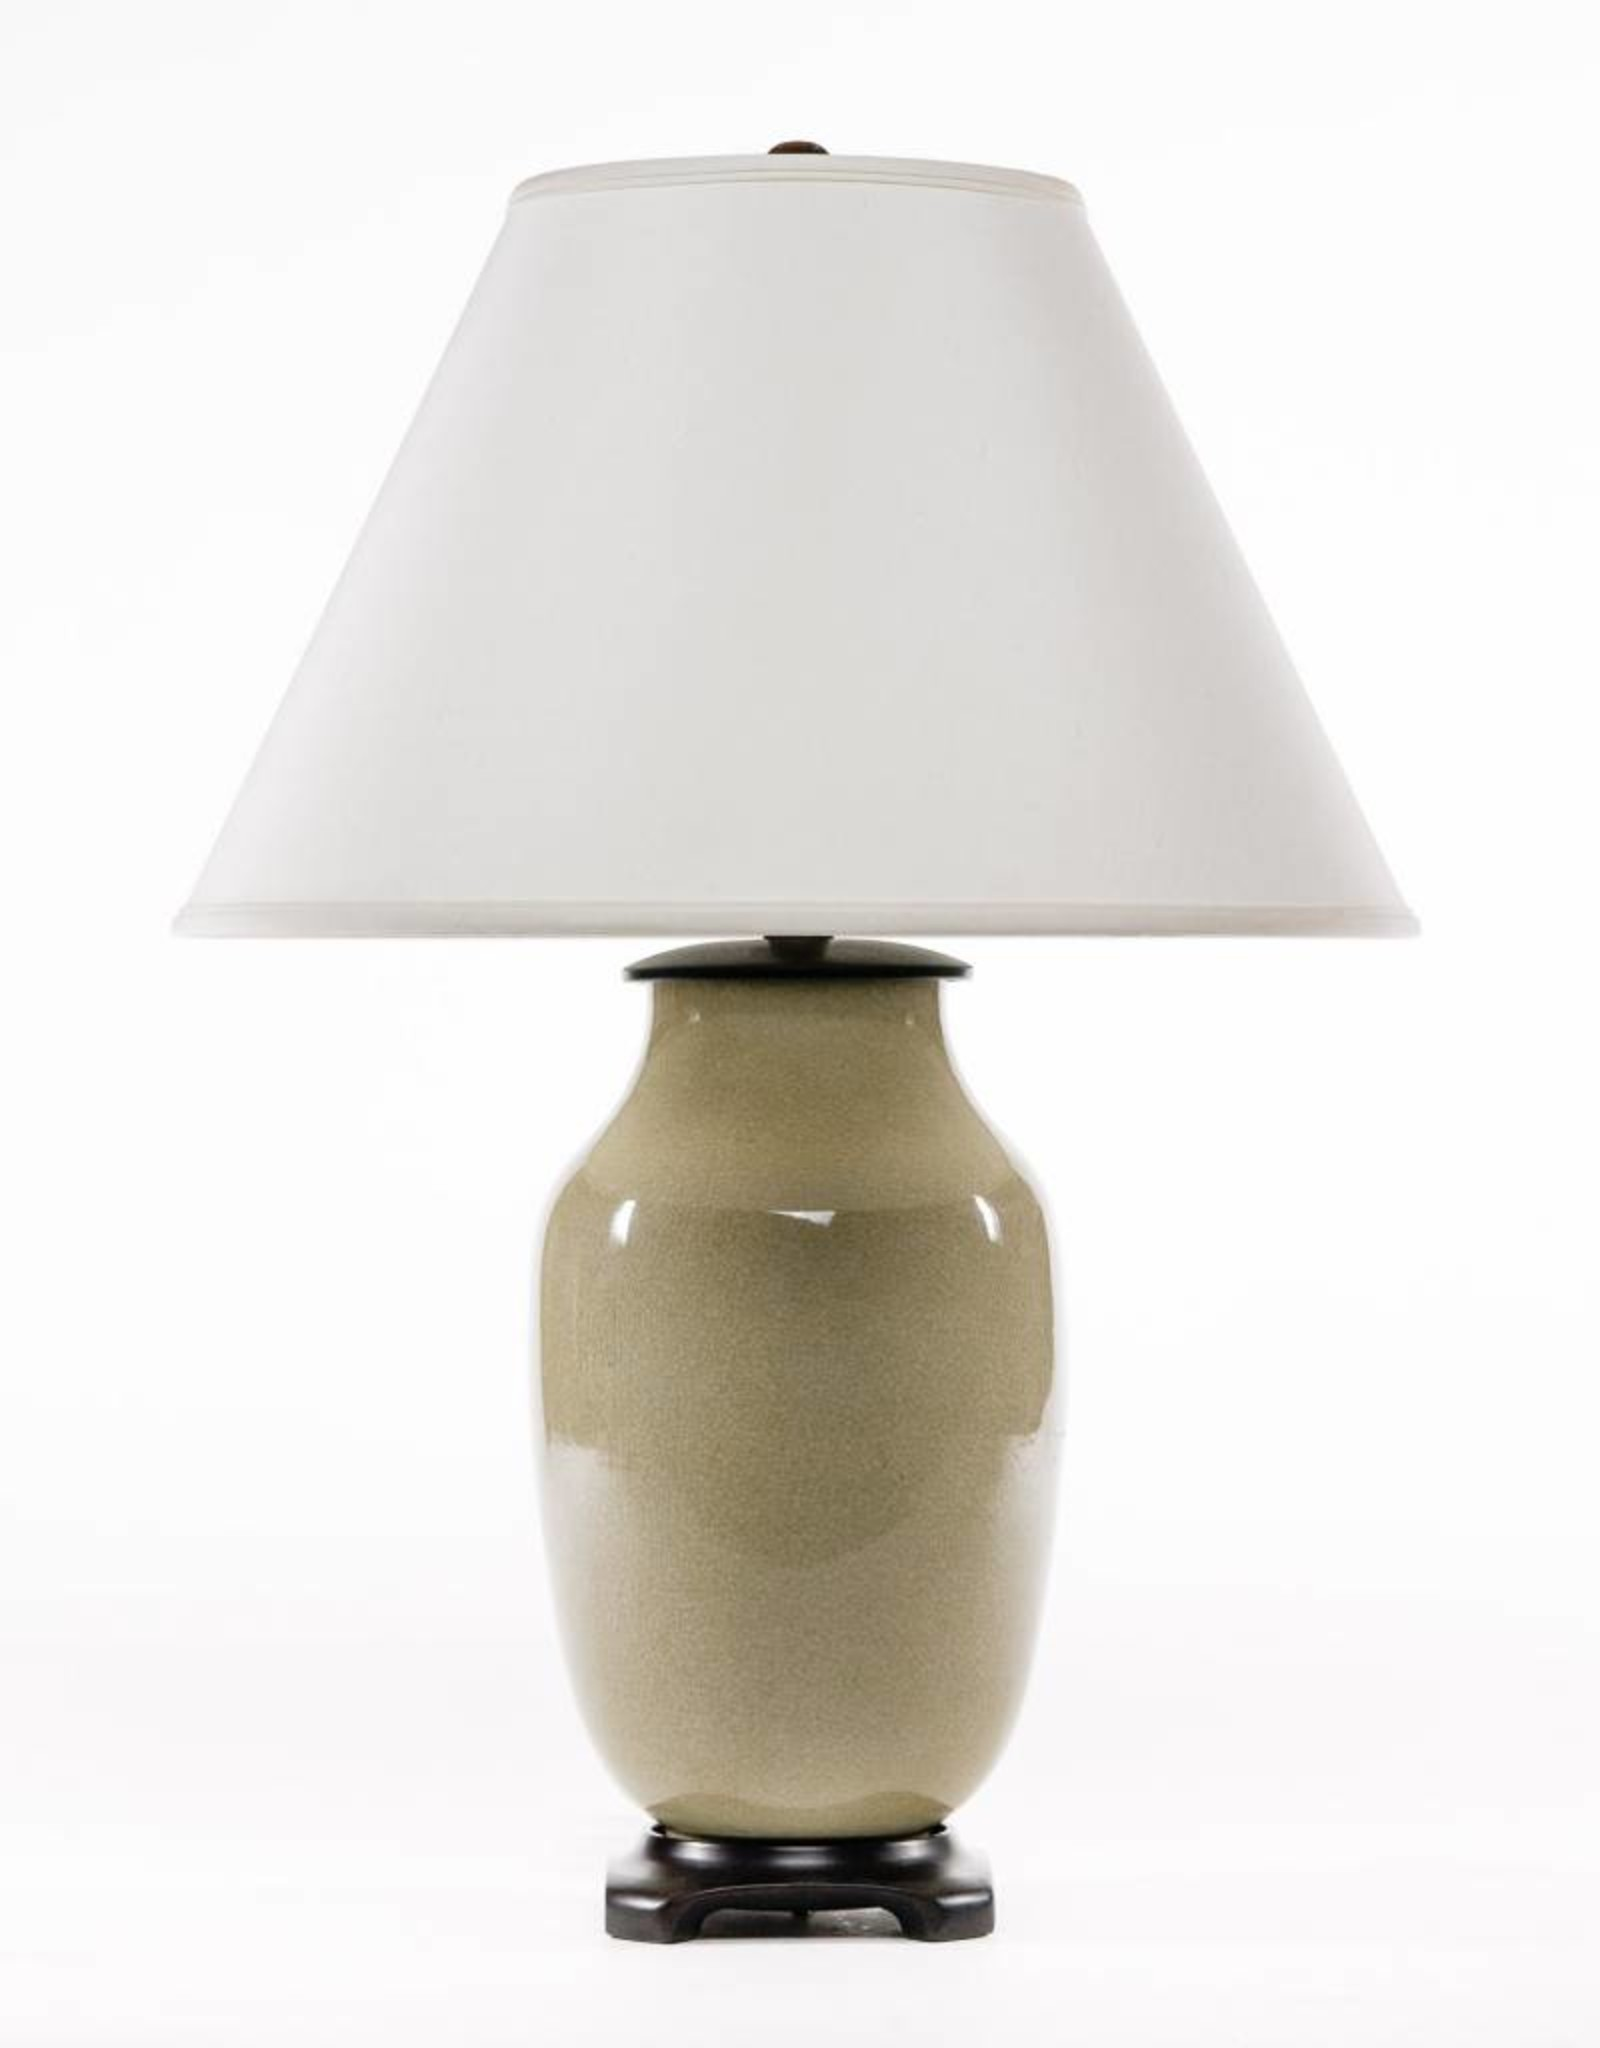 Lawrence & Scott Legacy Lagom Lantern Lamp in Cream Crackle with Rosewood Base